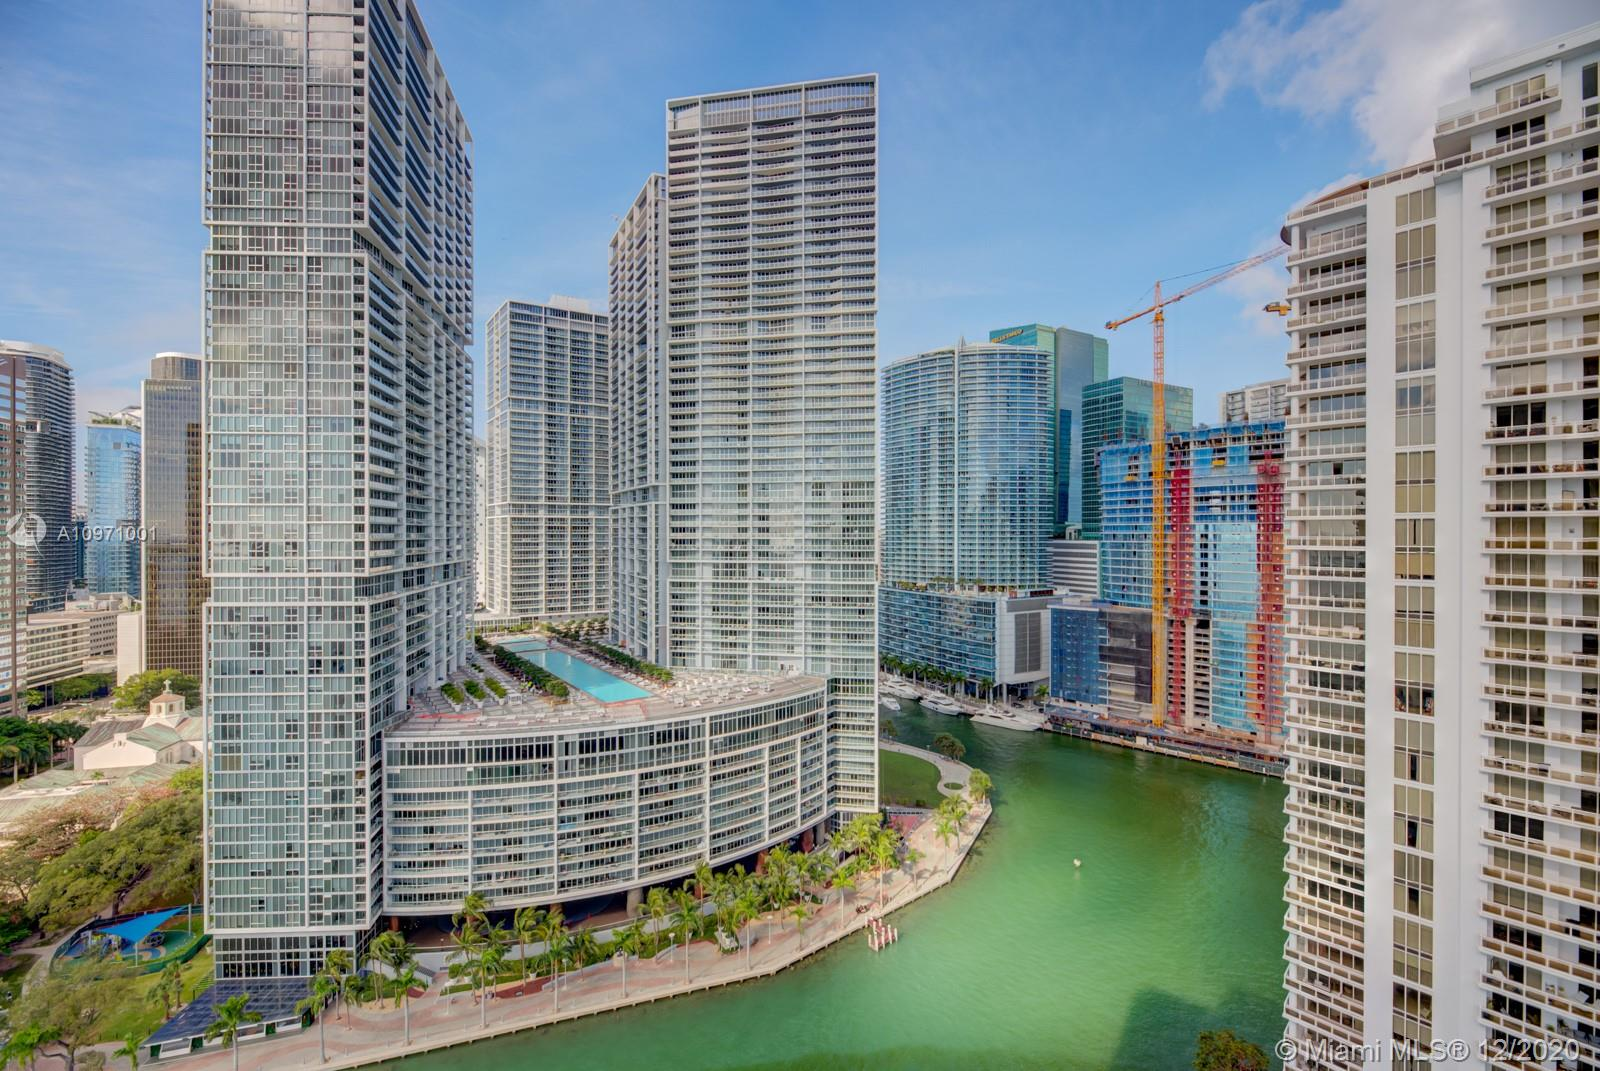 Courts Brickell Key #2704 - 801 Brickell Key Blvd #2704, Miami, FL 33131